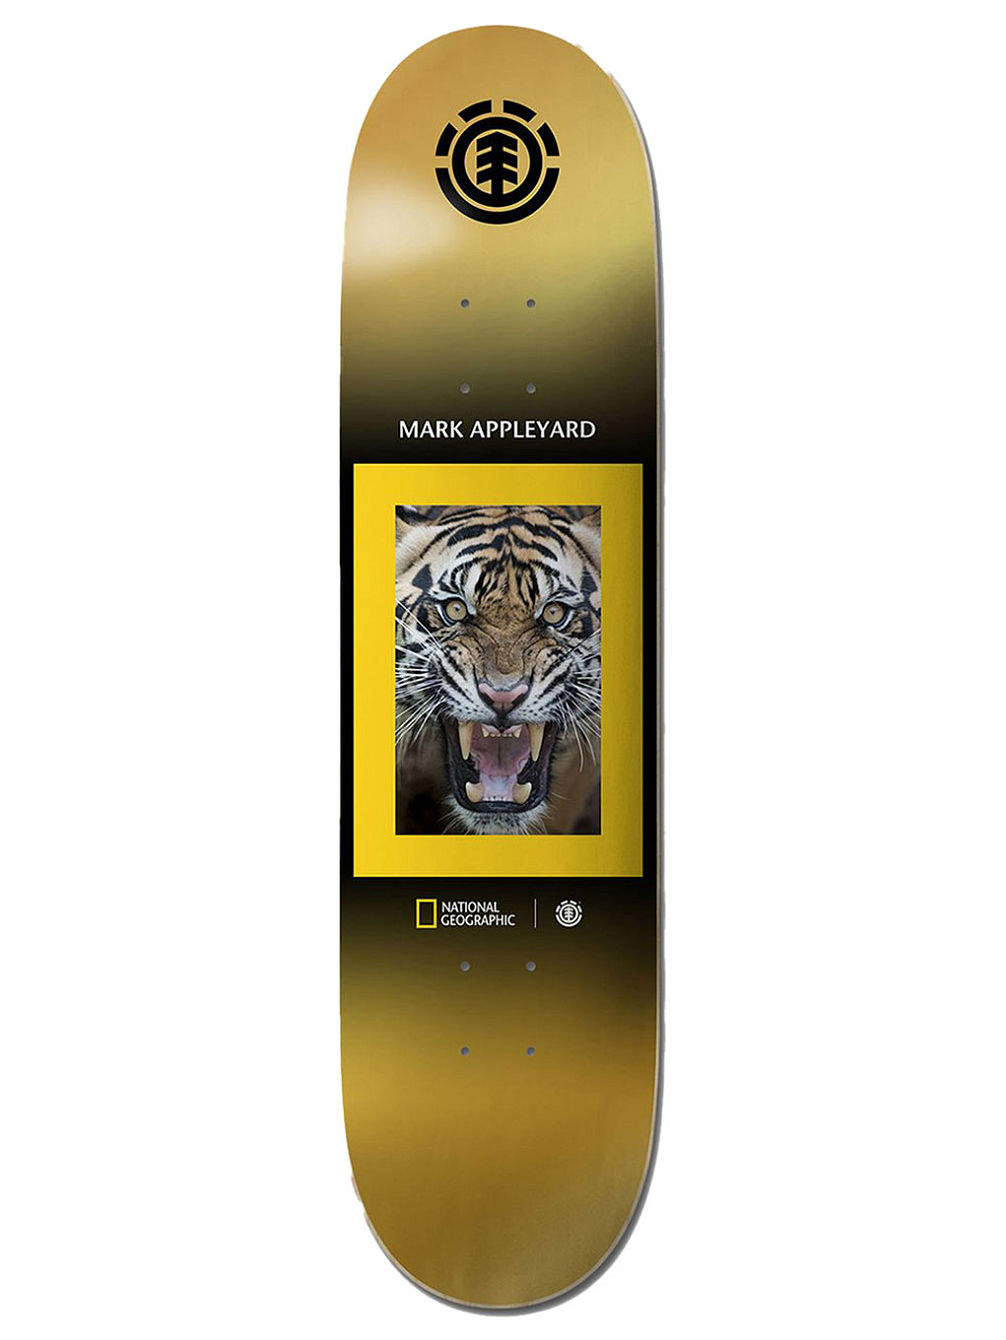 "Nat Geo Kings Appleyard 8.25"" Skateboard Deck"